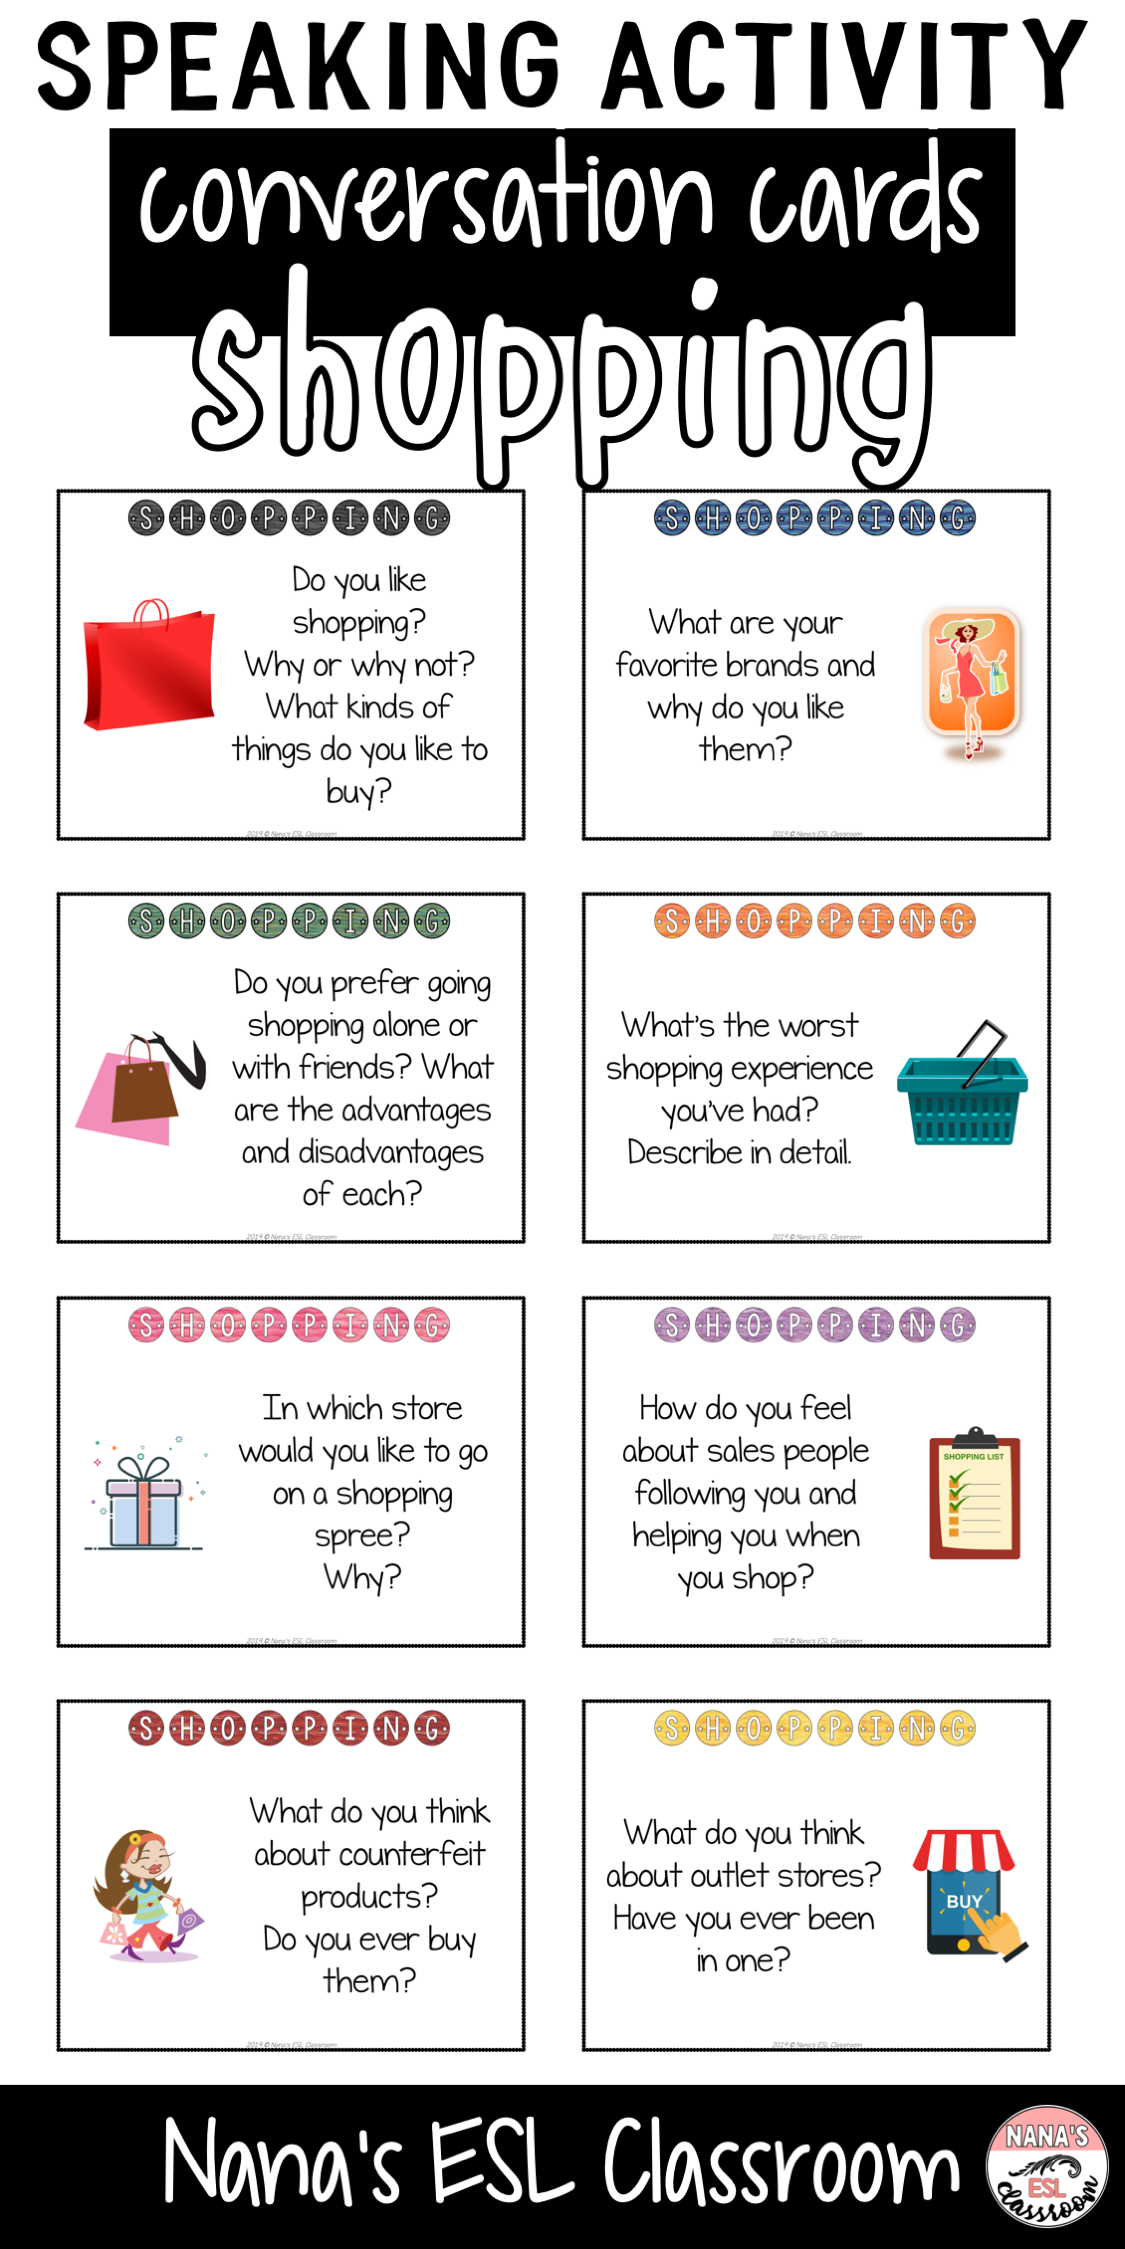 Conversation Starters About Shopping